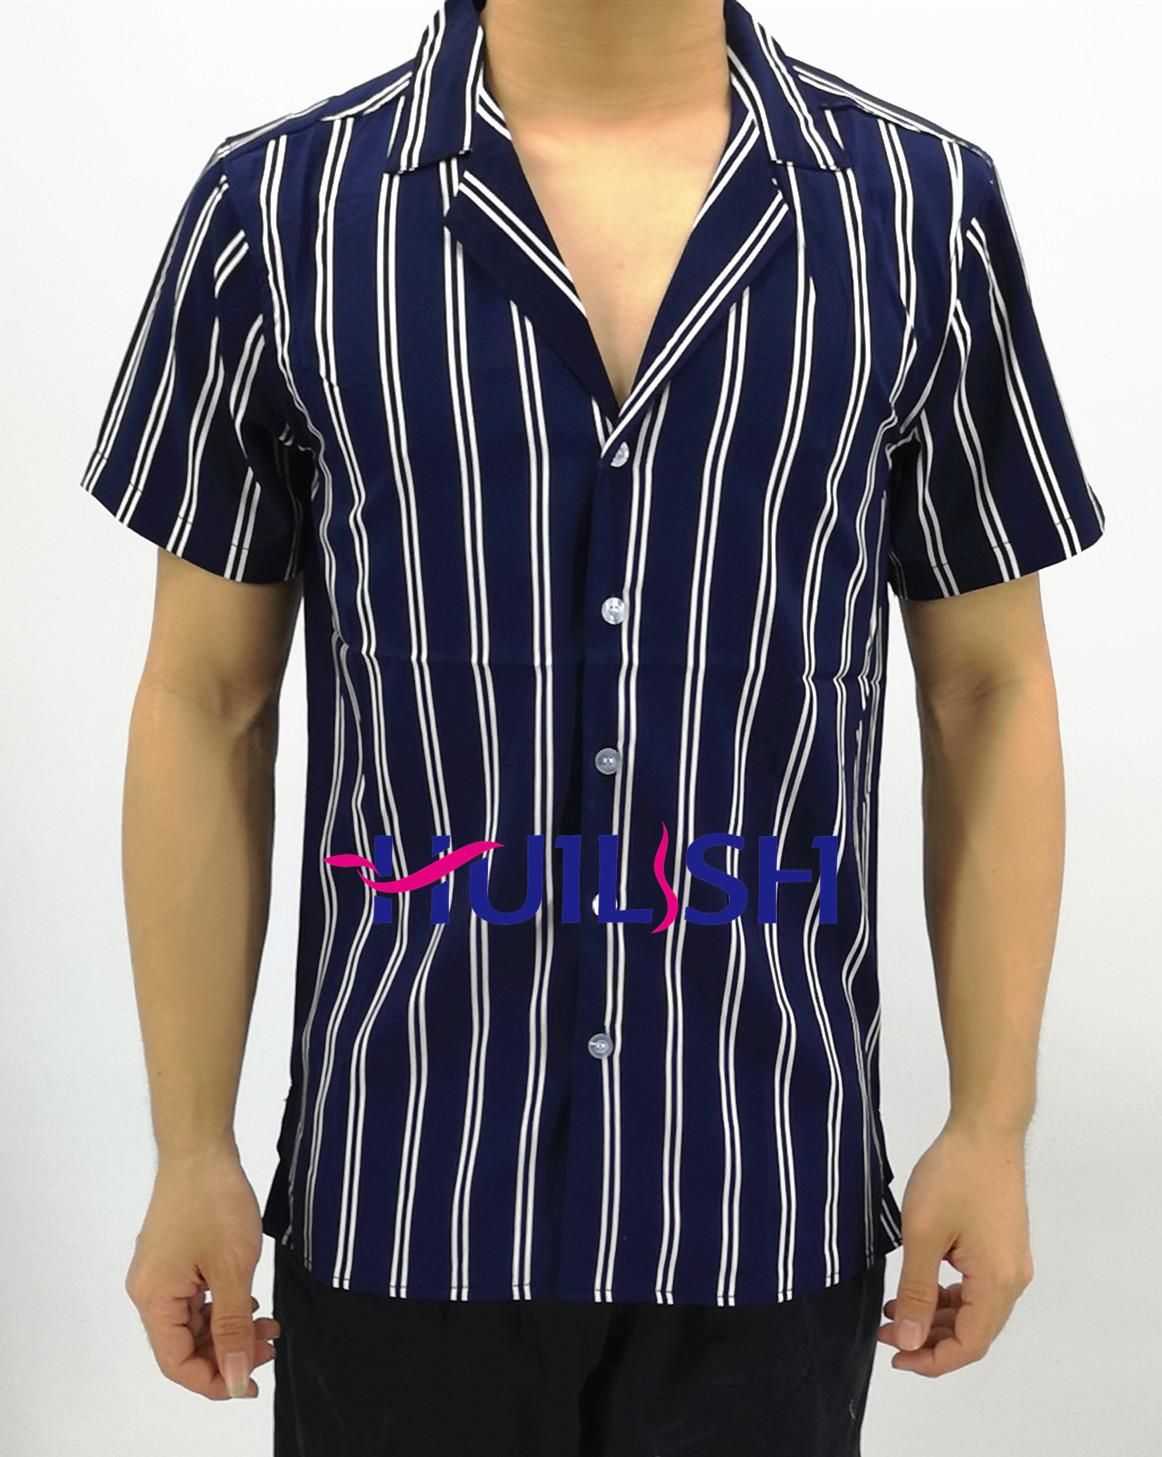 72f78acee4 Huilishi New striped shirt men's short sleeve casual Korean shirt For men's